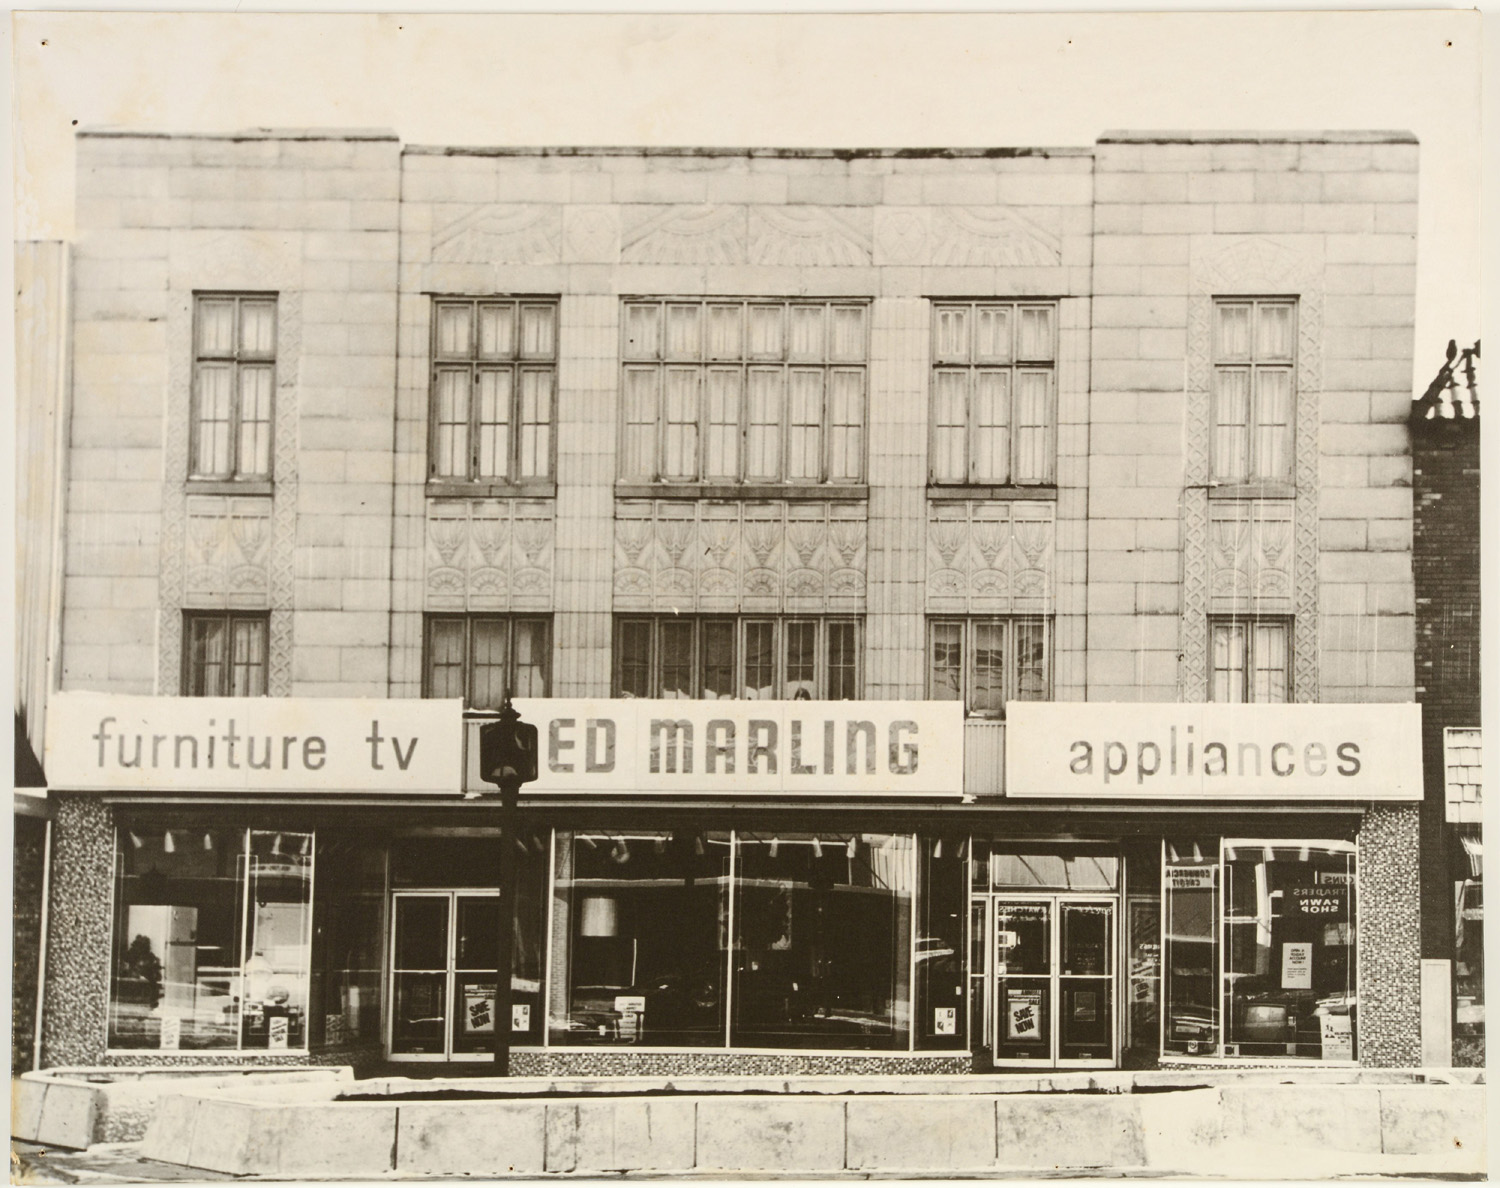 Charmant Ed Marling Furniture And Appliance Store In Lawrence, Kansas